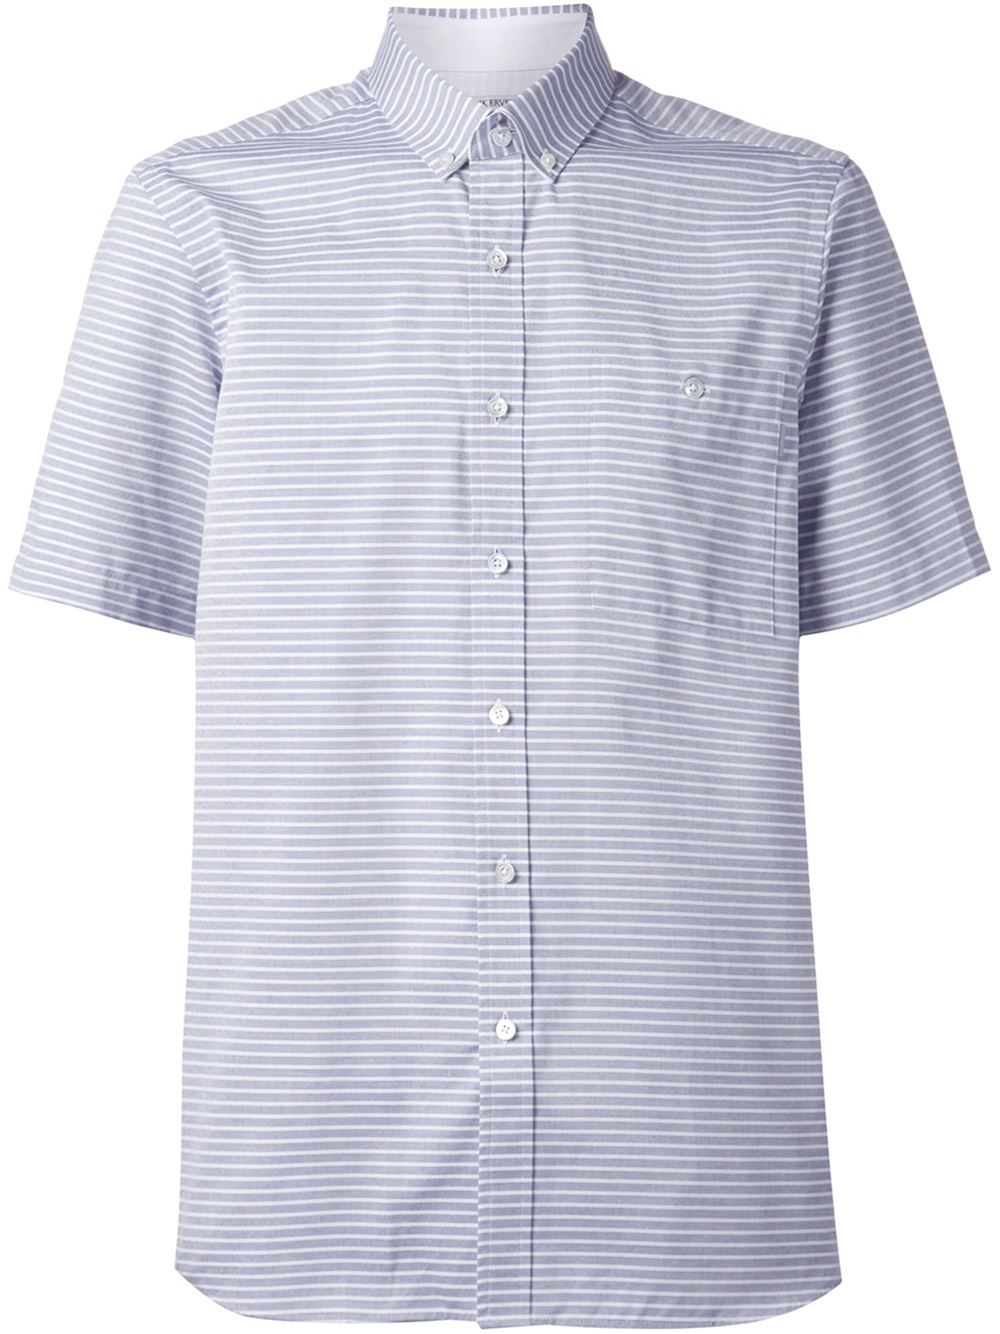 Patrik Ervell Striped Button Down Shirt In Blue For Men Lyst